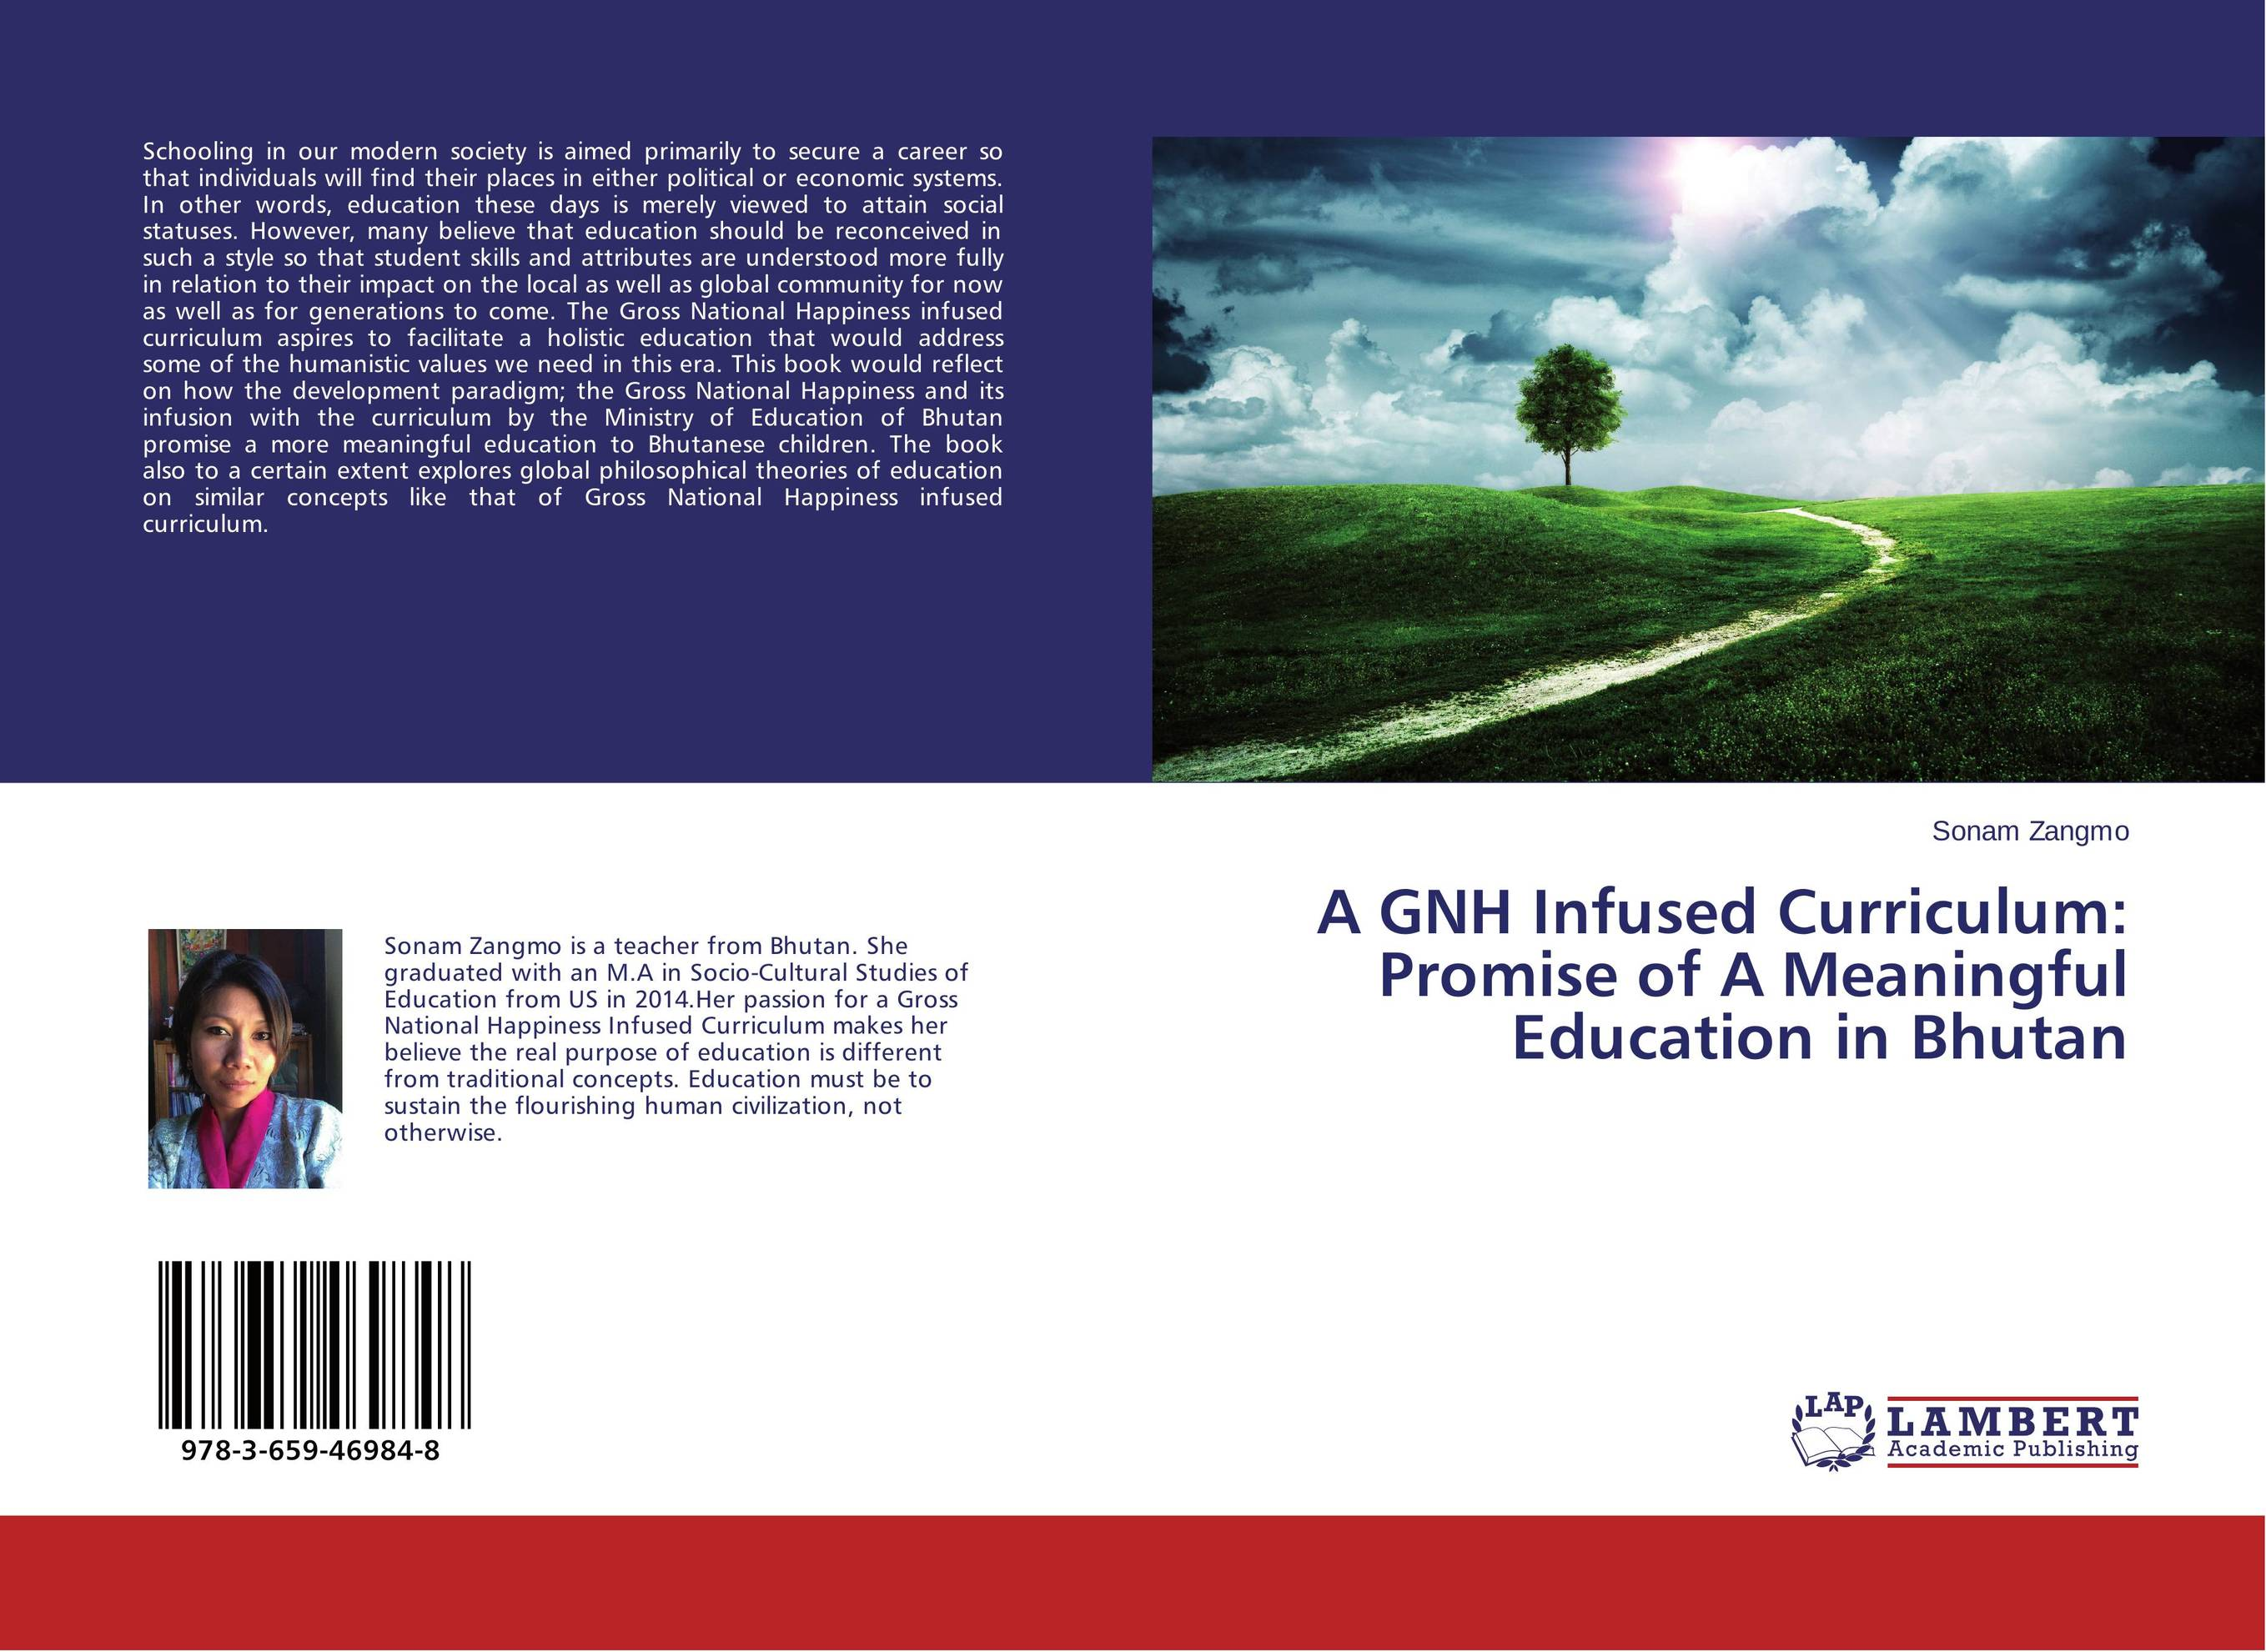 A GNH Infused Curriculum: Promise of A Meaningful Education in Bhutan мягкая игрушка promise a nw113501 bobo 35cm